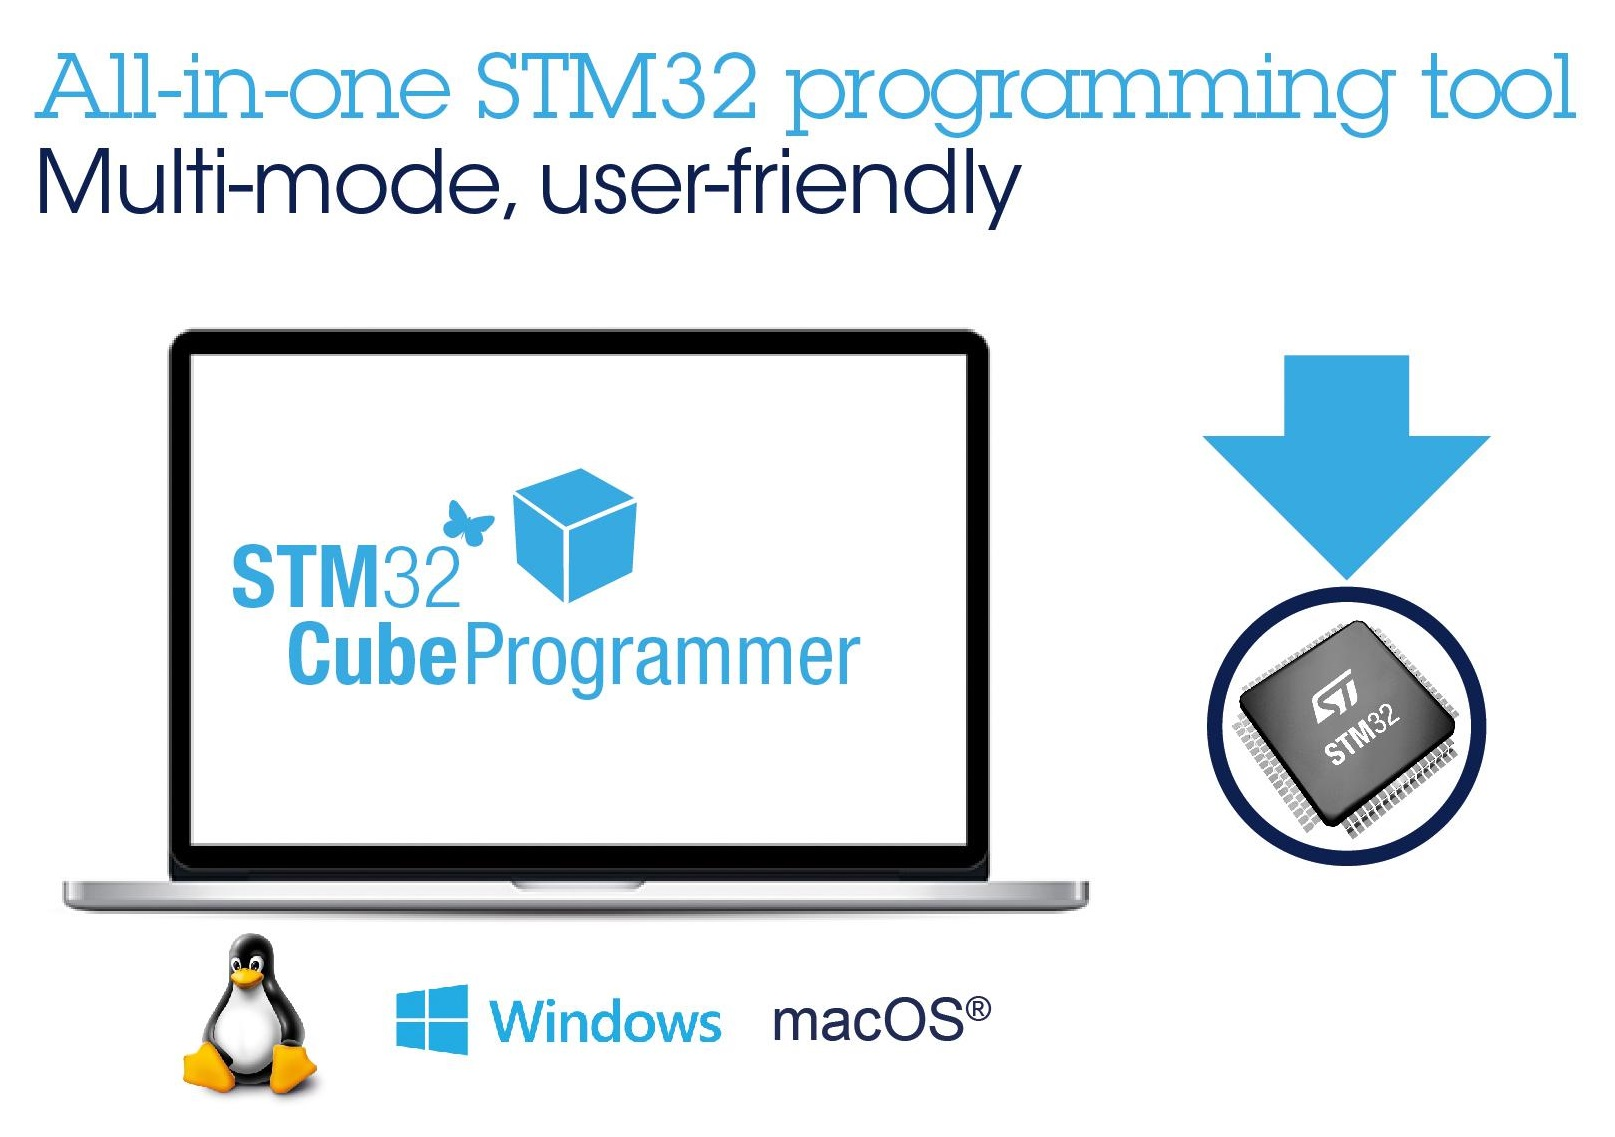 Tool Simplifies STM32 MCU Programming and Protects IP | Circuit Cellar